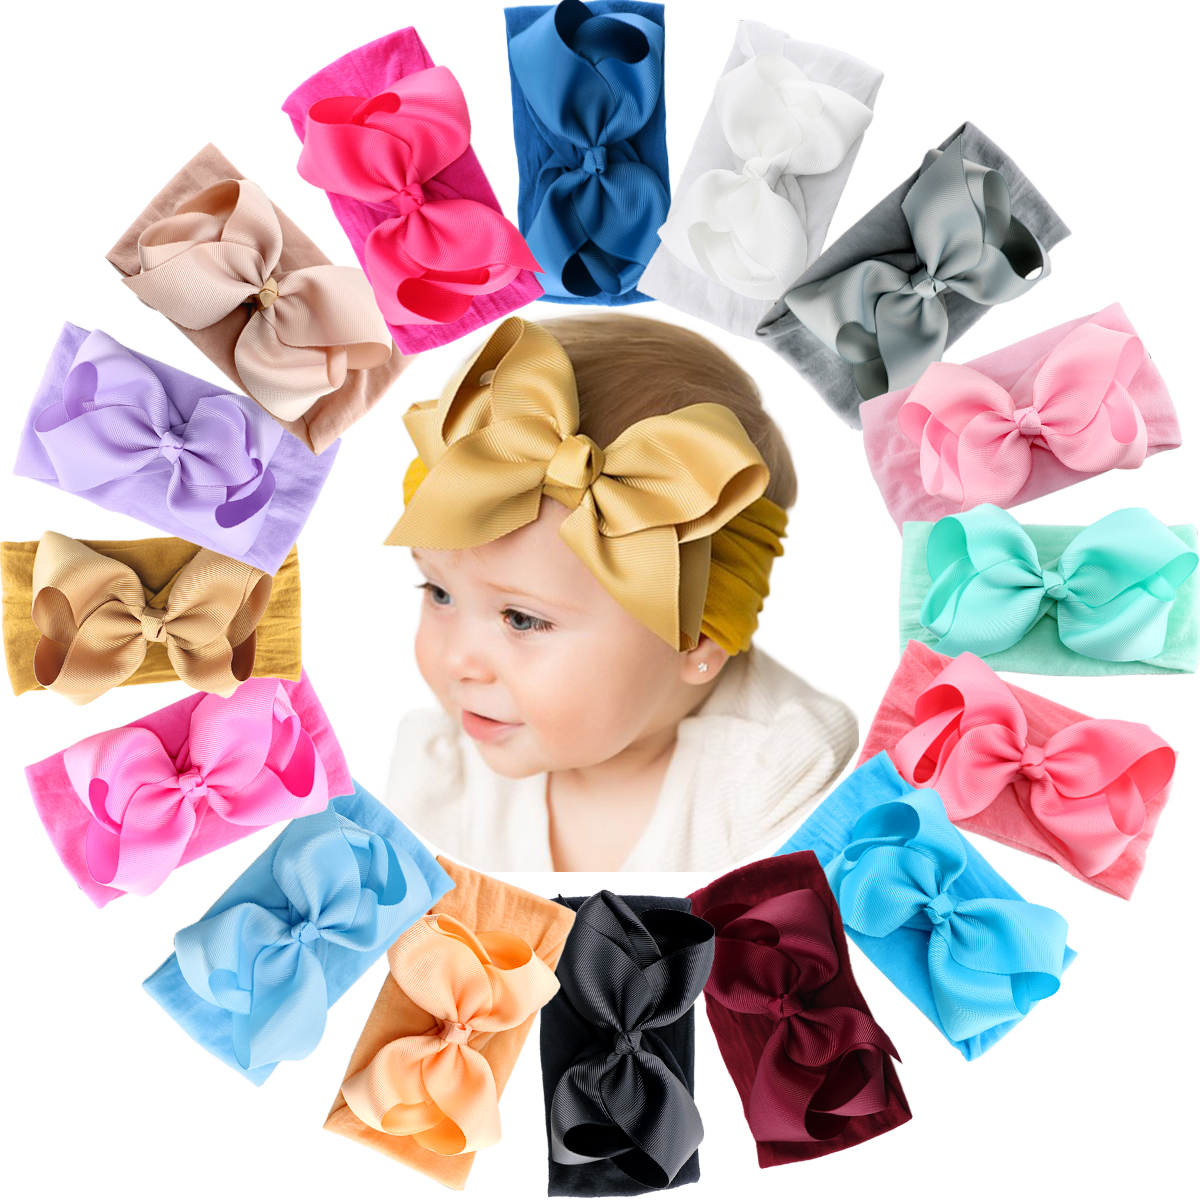 16 Colors Baby Nylon Knotted Headbands Girls Big 6 Inches Hair Bows Head Wraps Infants Toddlers Hairbands